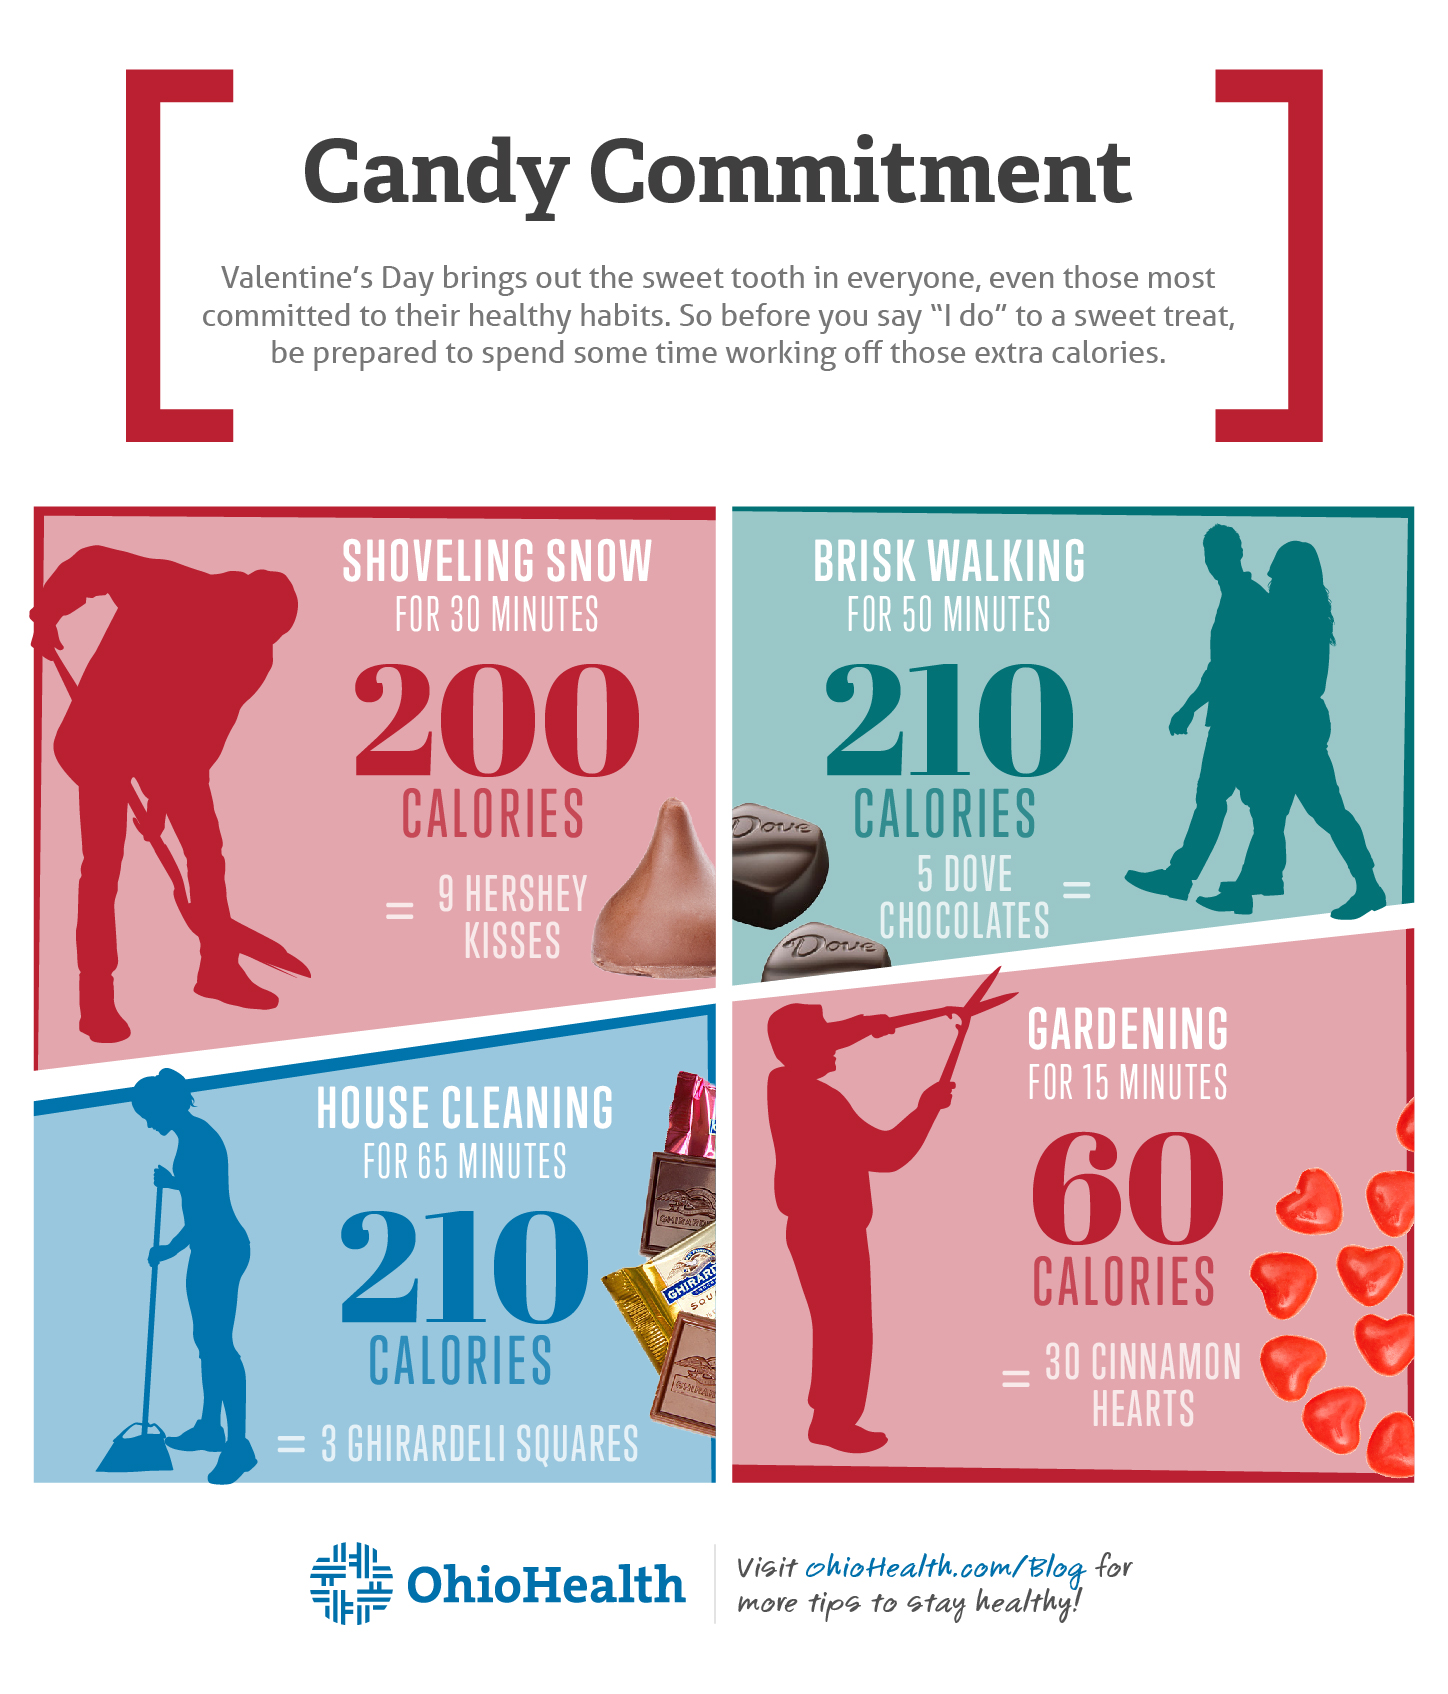 Candy Commitment - Exercises to Burn Off Valentine's Candy Calories